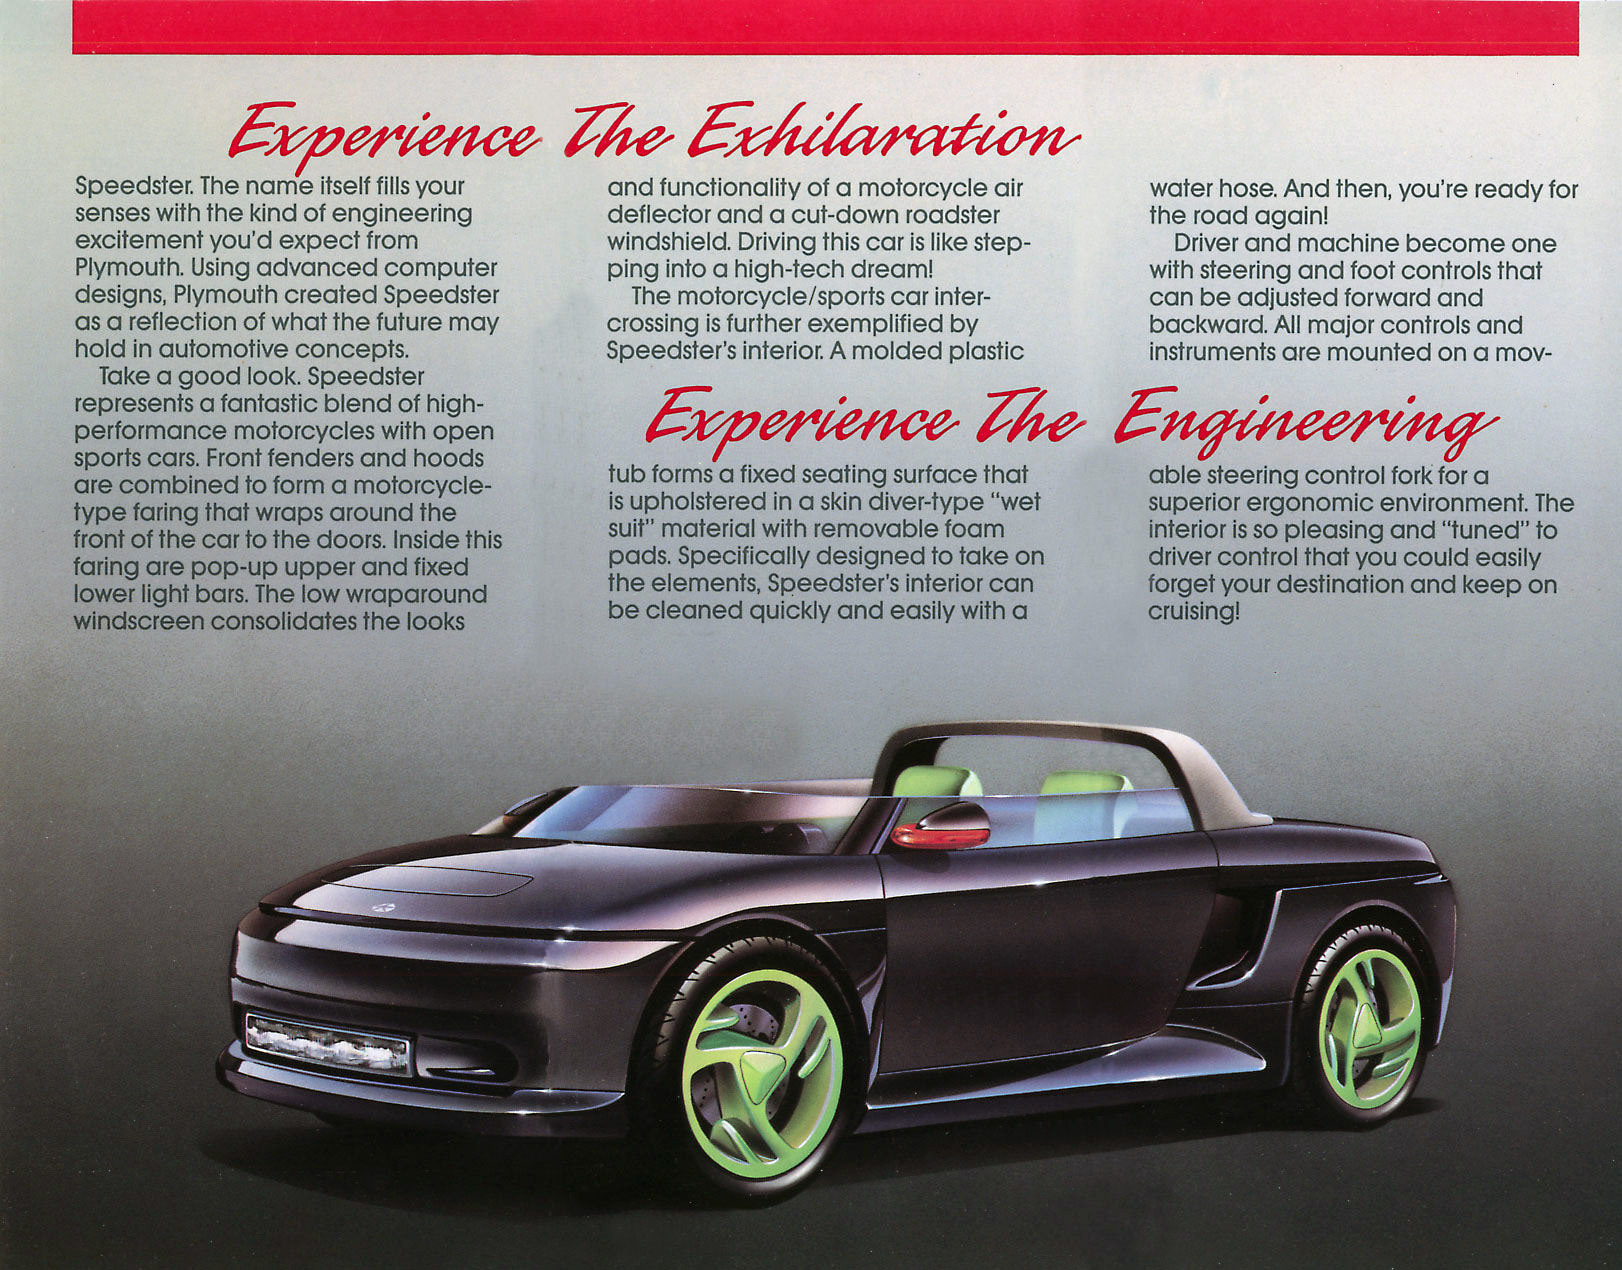 Plymouth speedster photo - 3